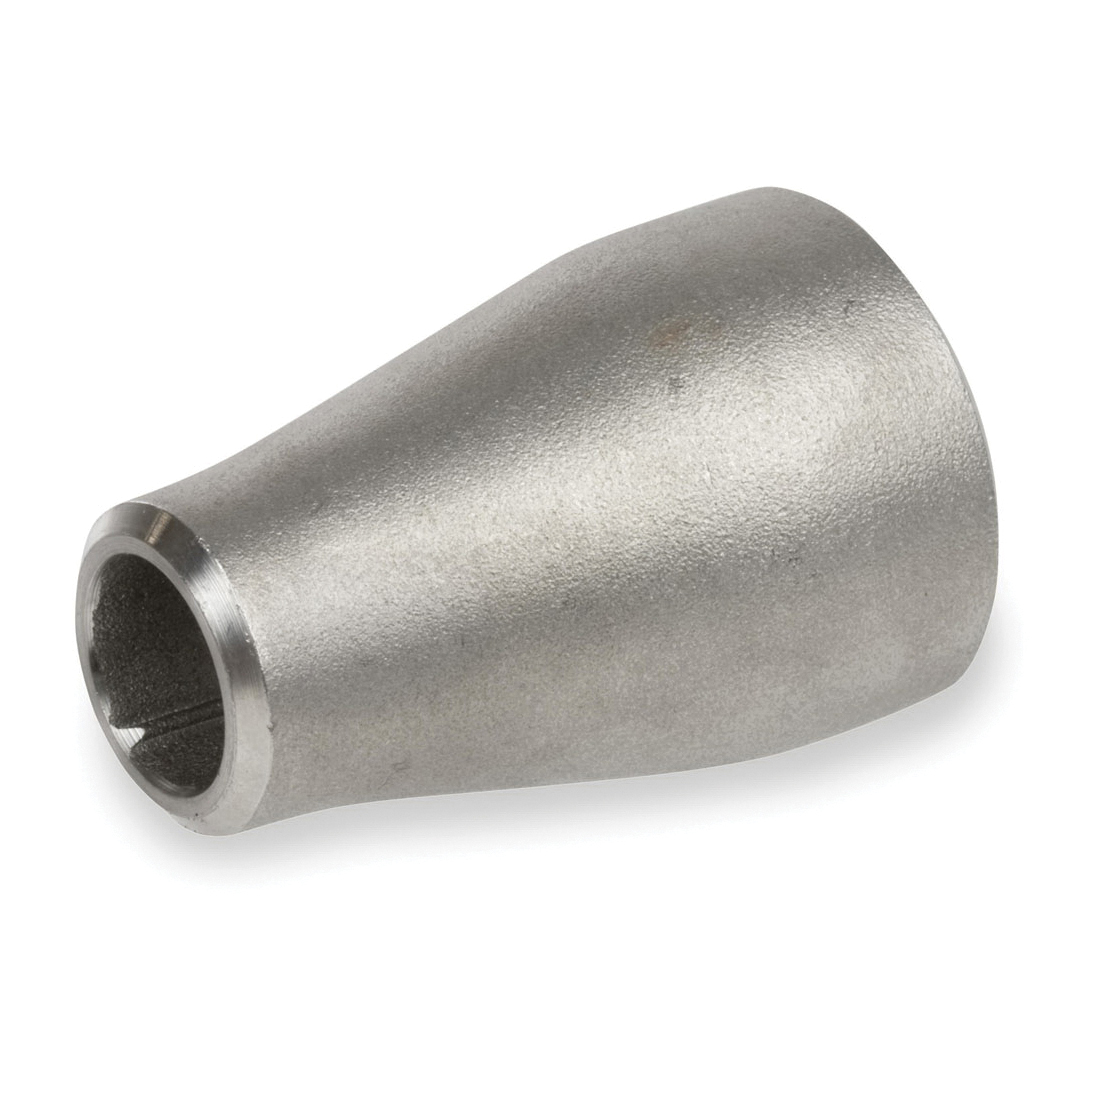 Smith-Cooper® S2014CR030020 Concentric Reducer, 3 x 2 in, Butt Weld, SCH 10, 304L Stainless Steel